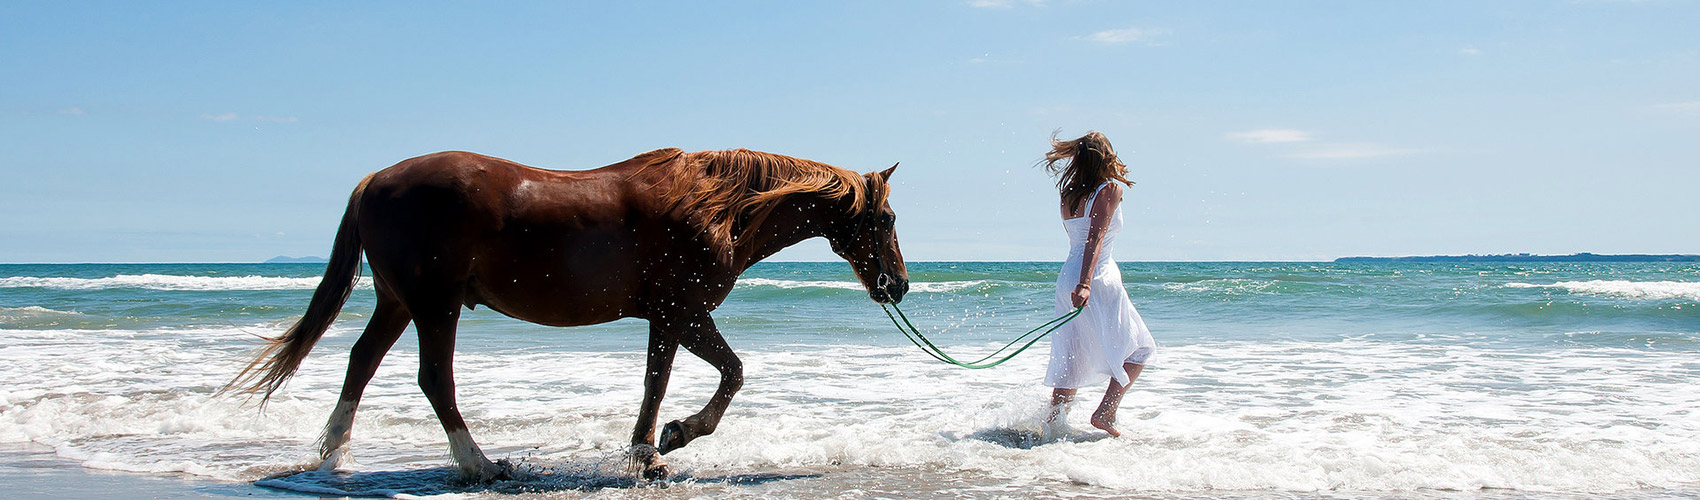 walking_horse_on_beach_header